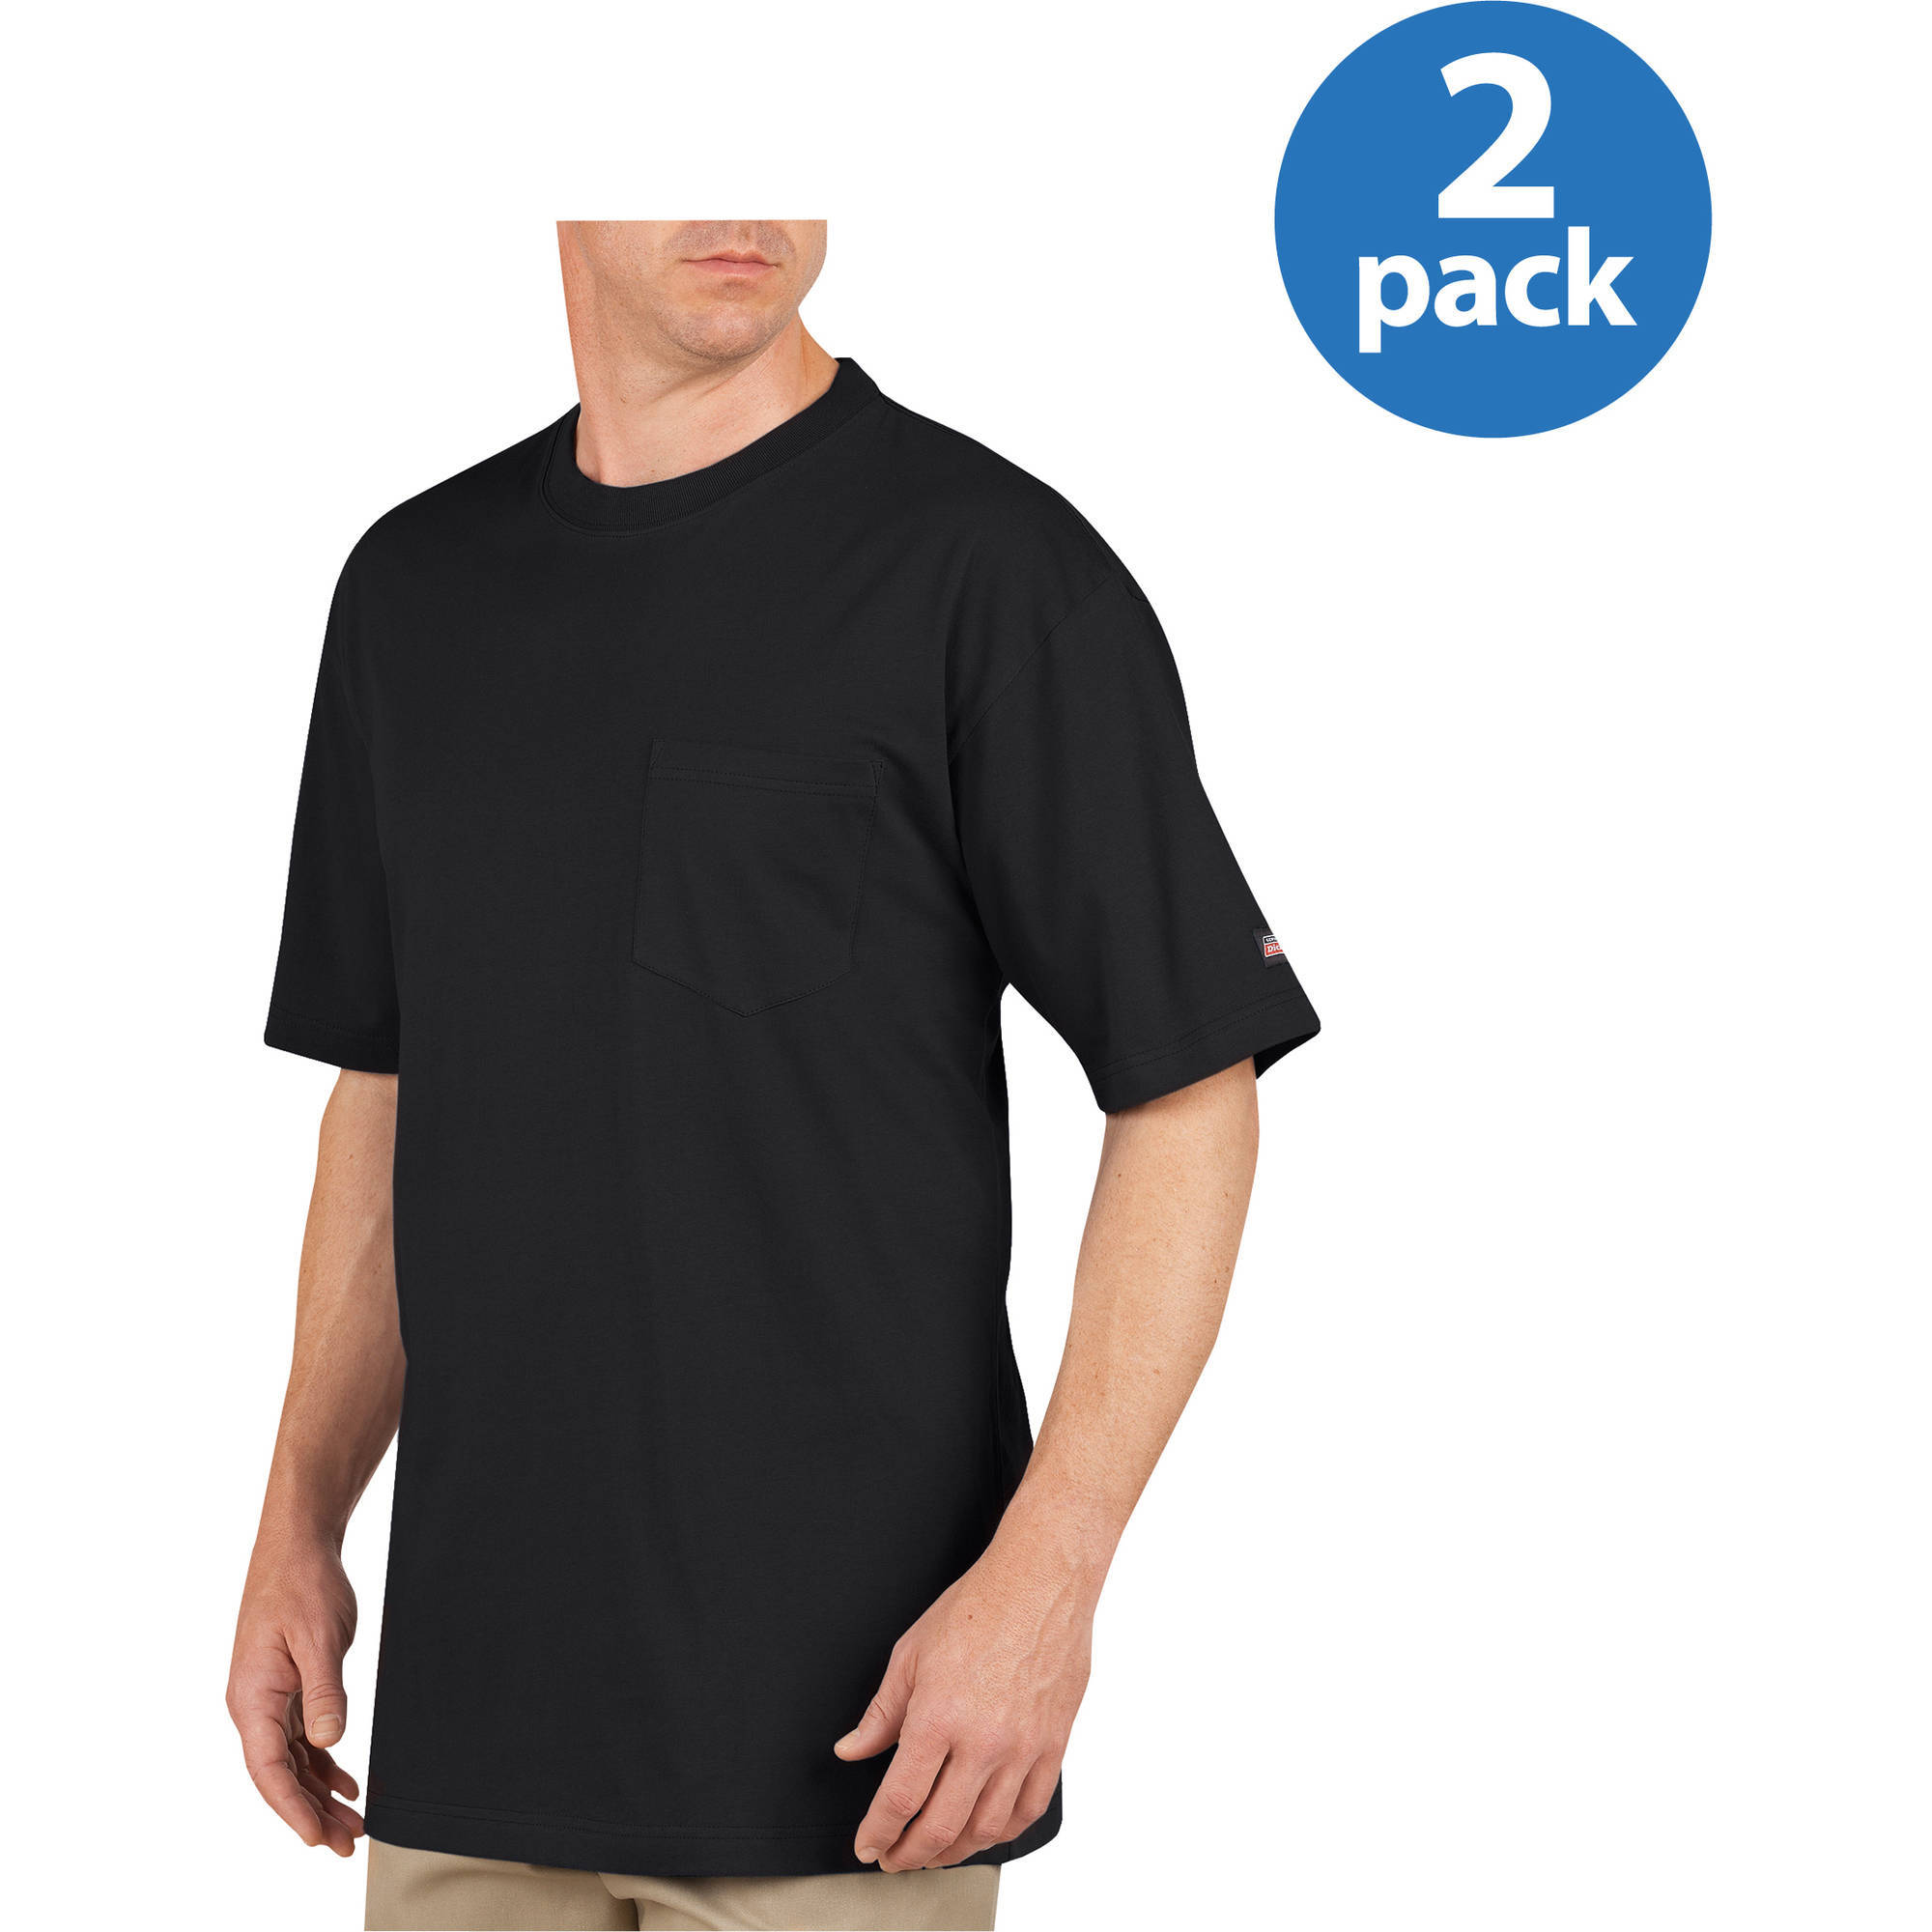 Genuine Dickies Heavy Weight Short Sleeve Pocket Tees, 2-Pack